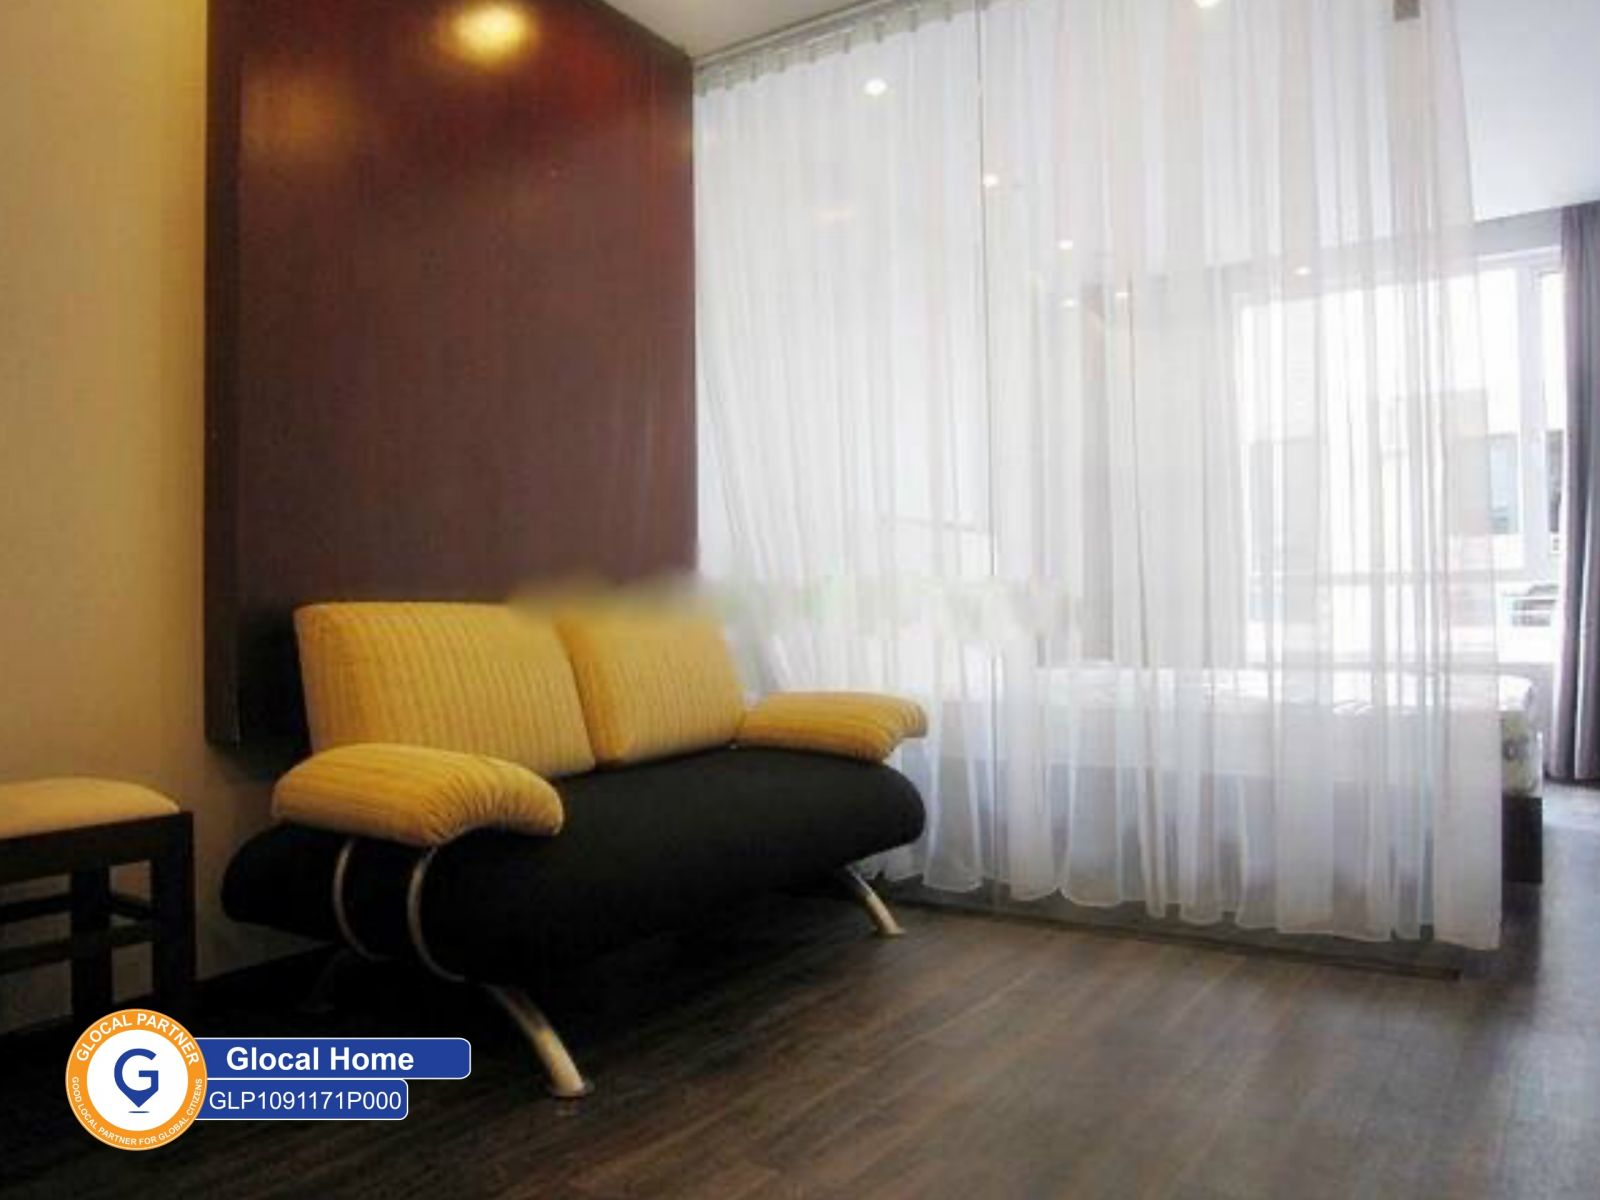 Fully furnished 1-bedroom apartment with good security in Mac Dinh Chi